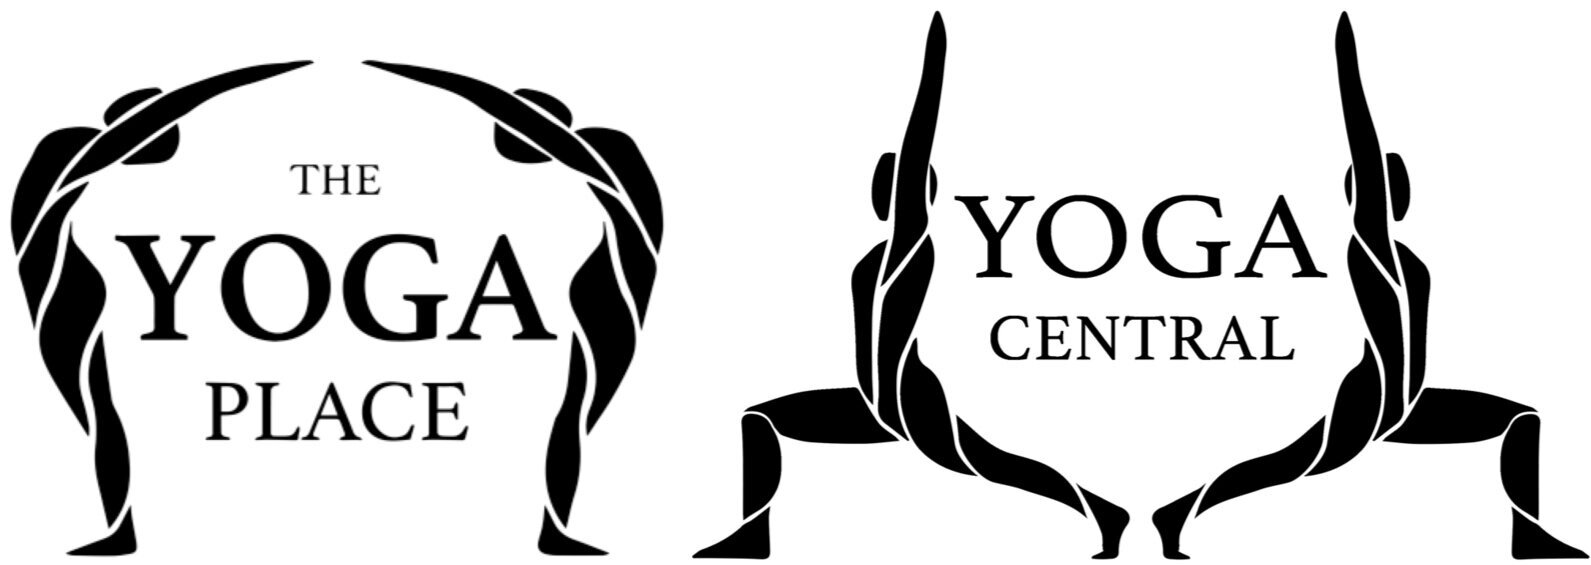 YOGA CENTRAL / THE YOGA PLACE